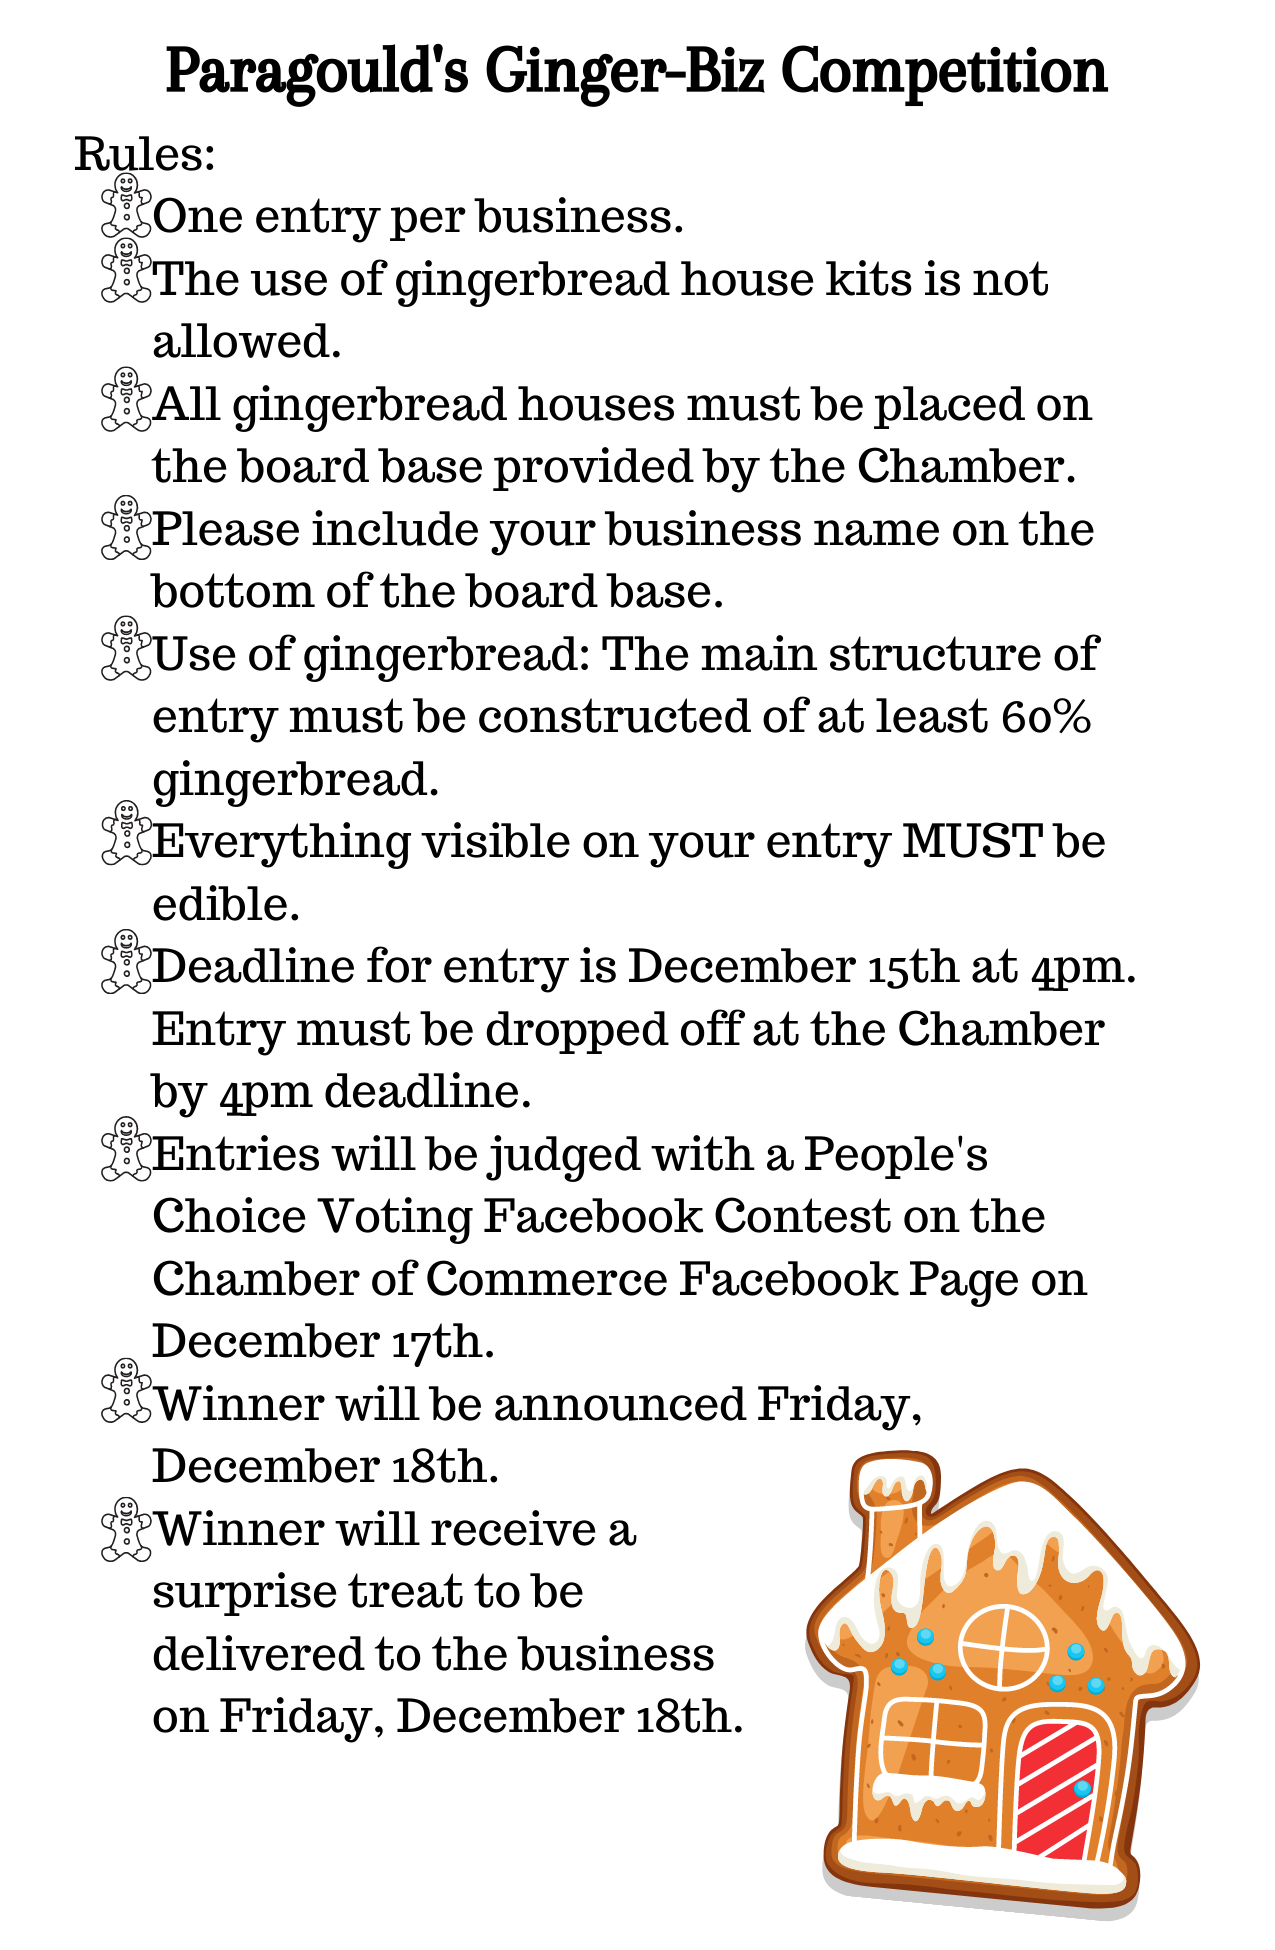 Ginger-Biz Competition Rules